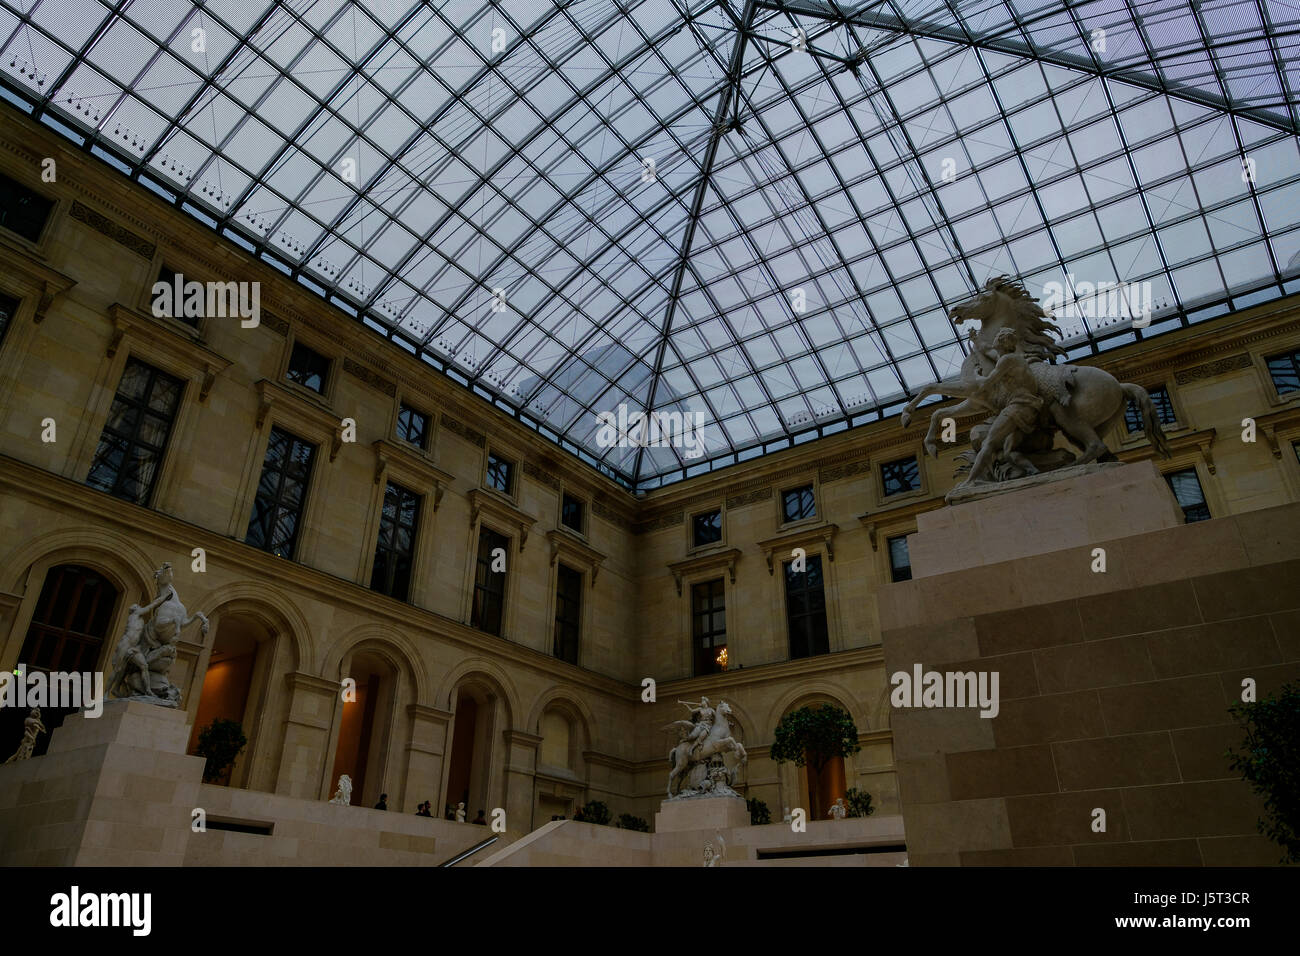 Inside Of Building In France - Stock Image